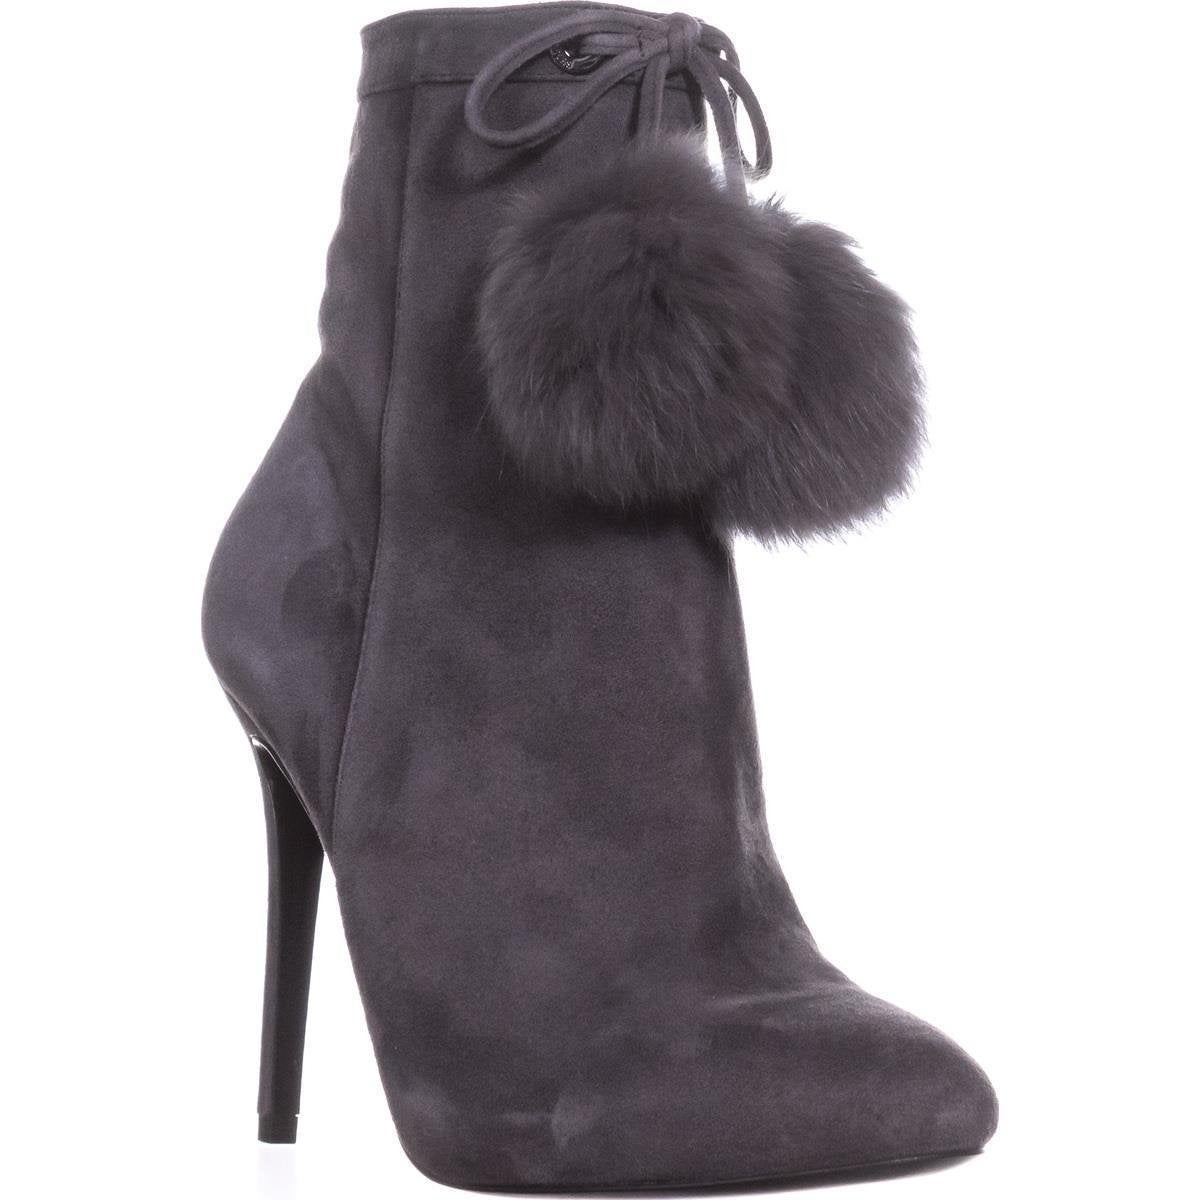 Buy Women's Michael Kors Boots Online at Overstock | Our